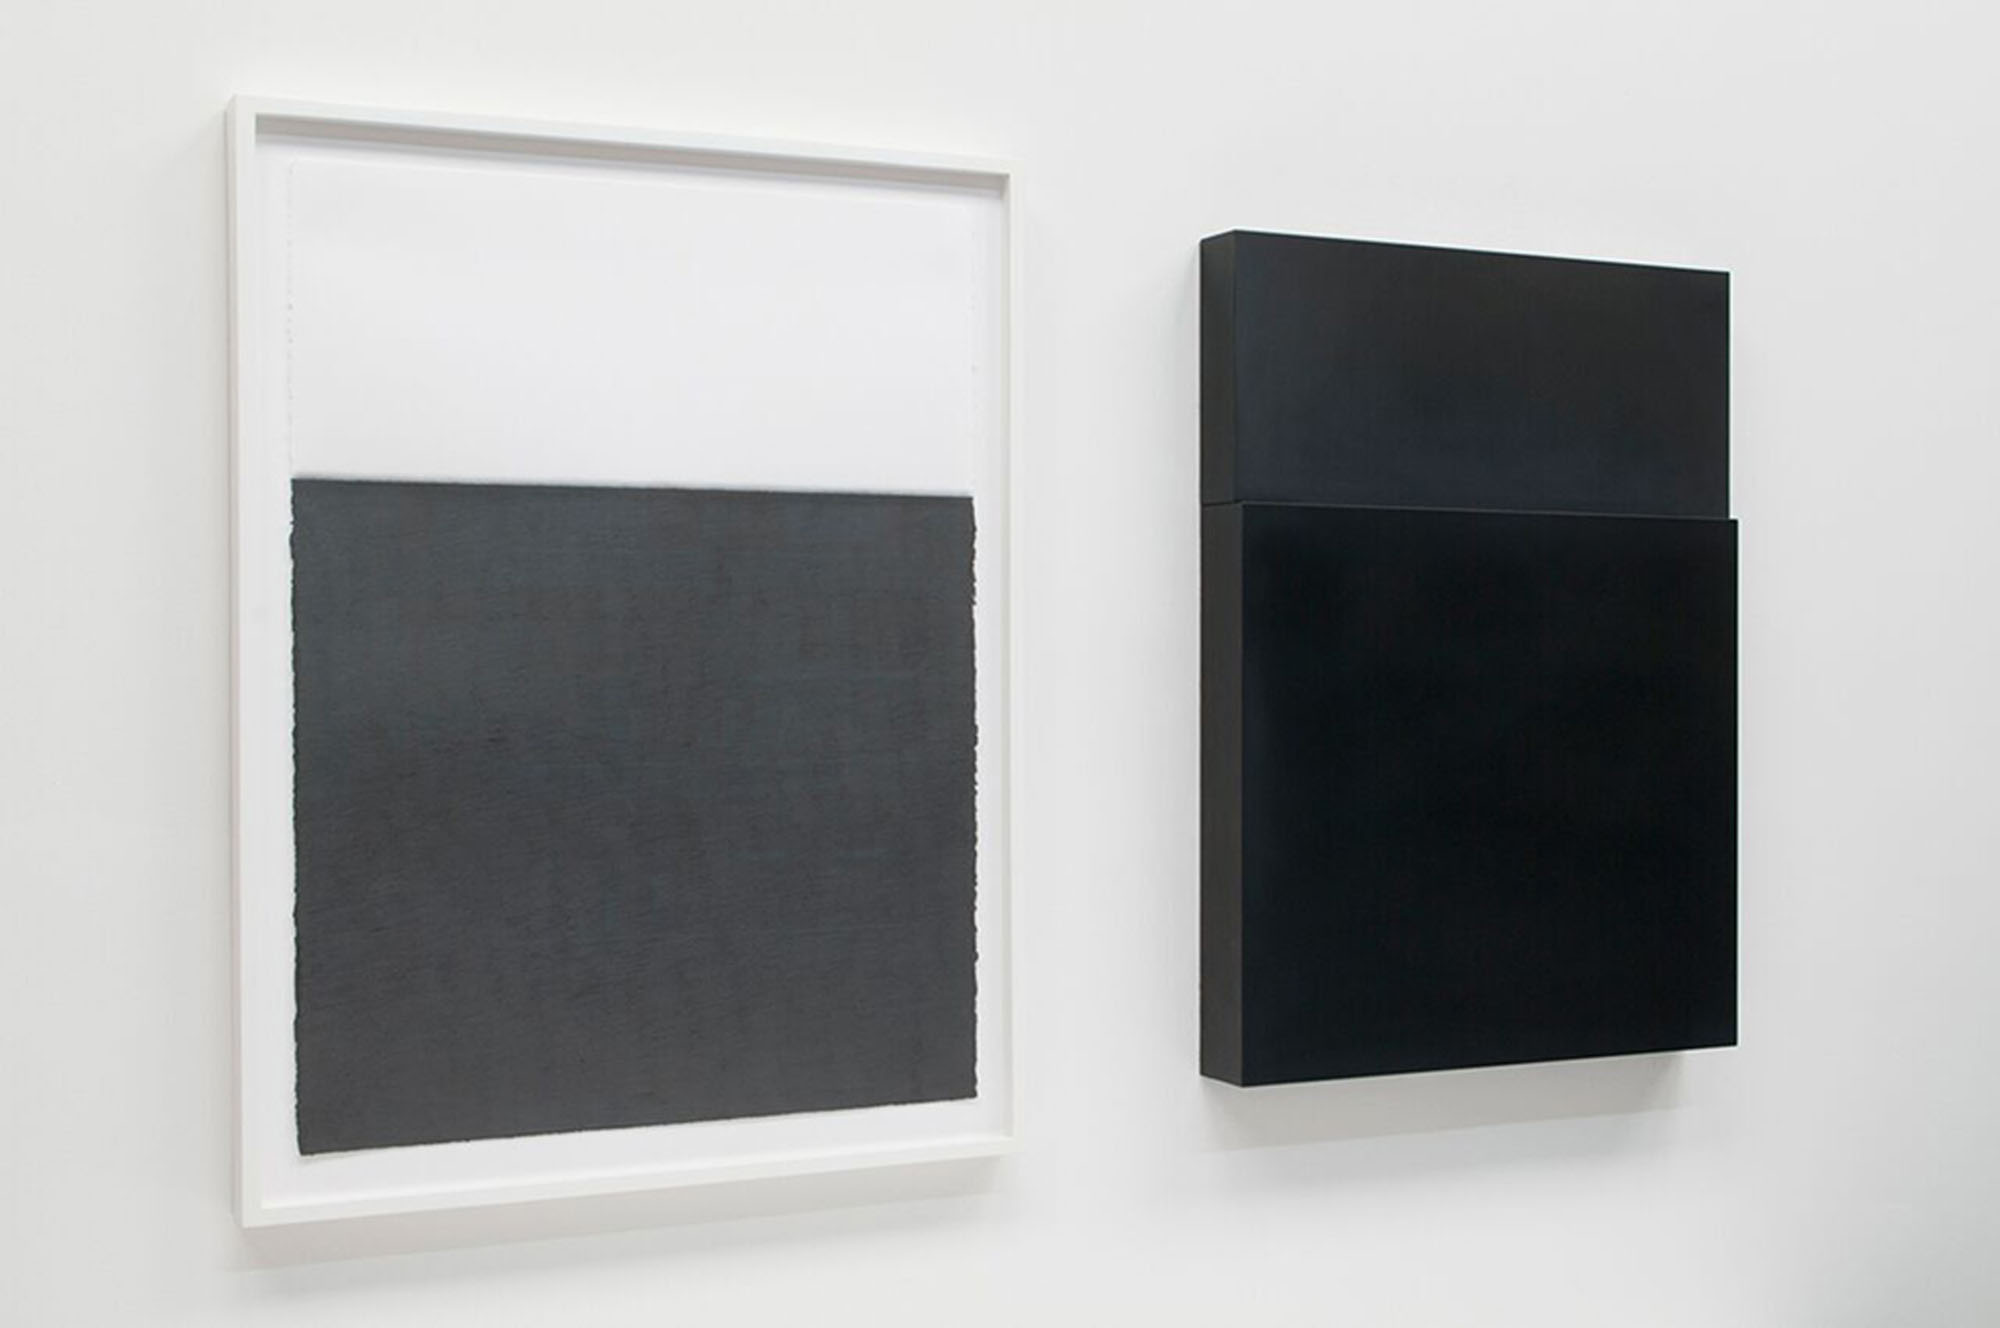 """Diptych, no. 1, 2010  Drawing: Graphite pencil on paper,30"""" x 22""""  Sculpture: Solid graphite,30"""" x 22"""" x 3"""""""